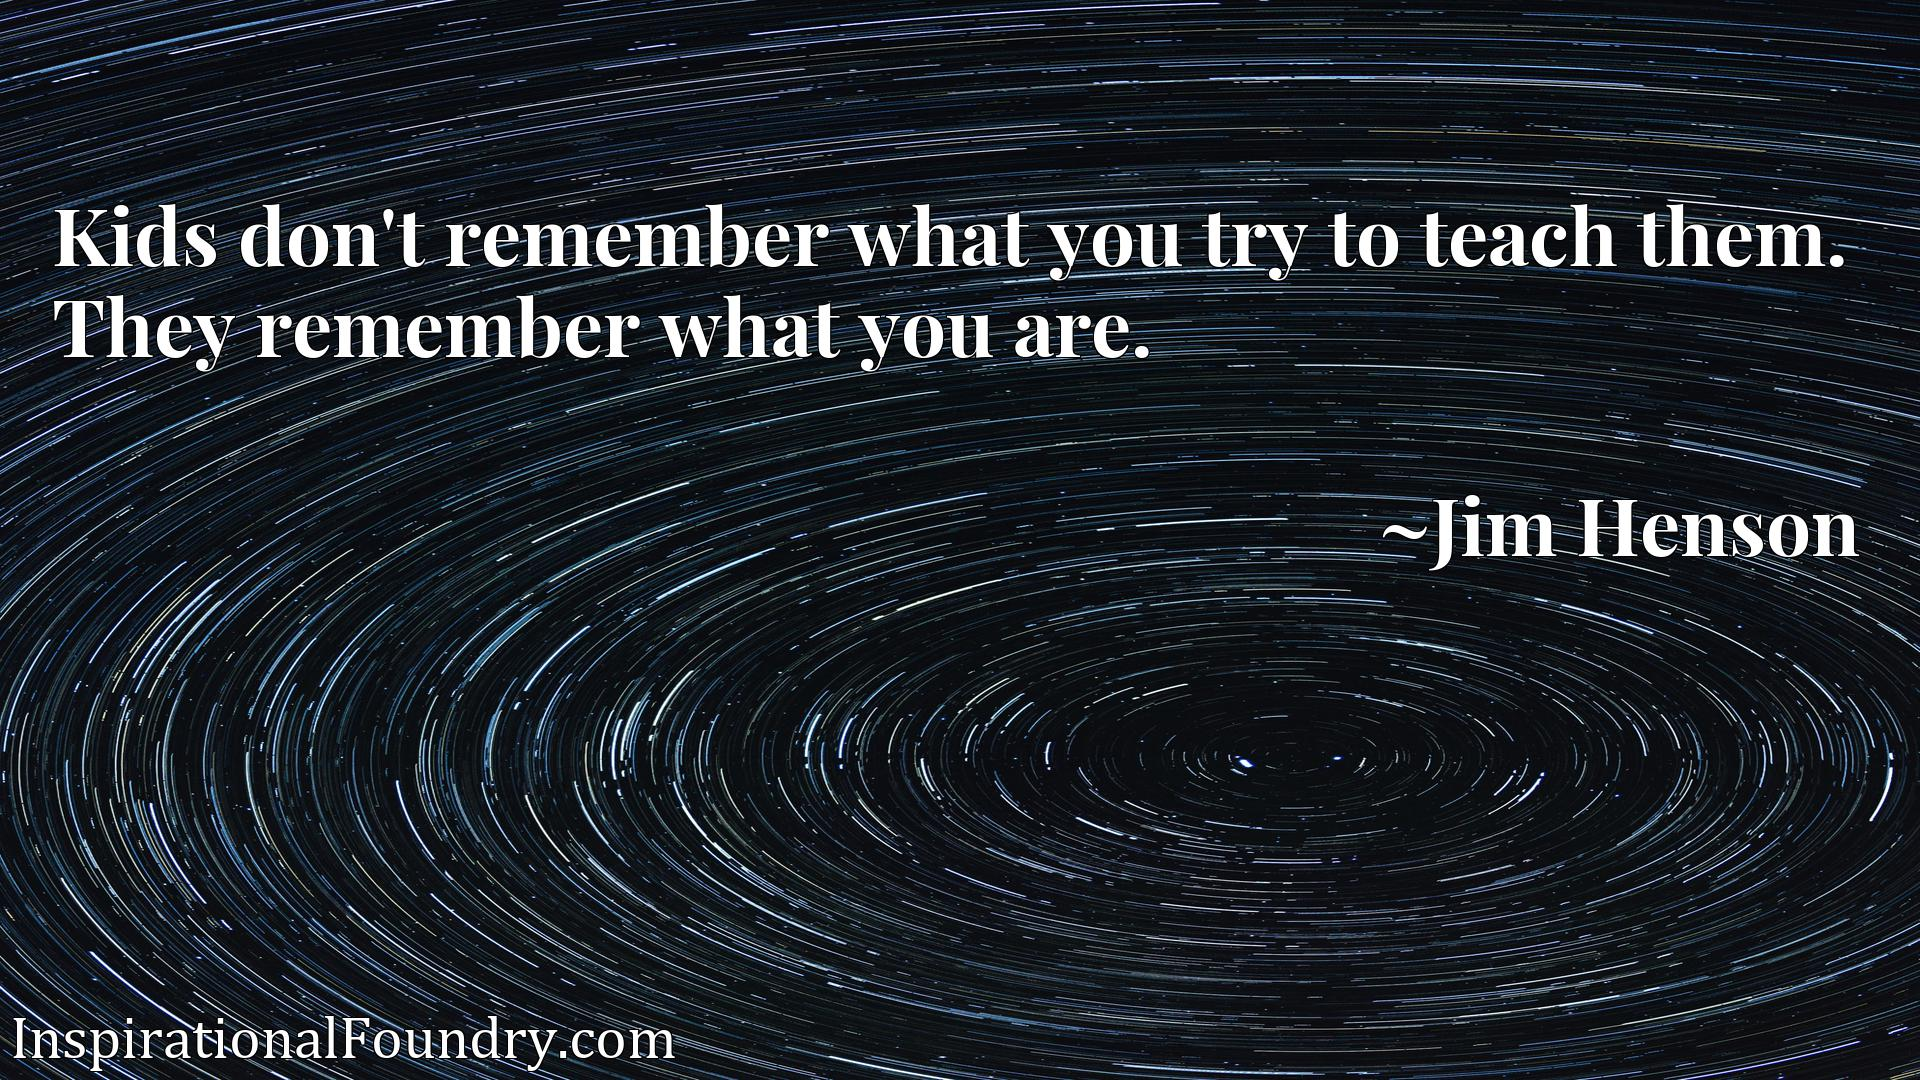 Kids don't remember what you try to teach them. They remember what you are.